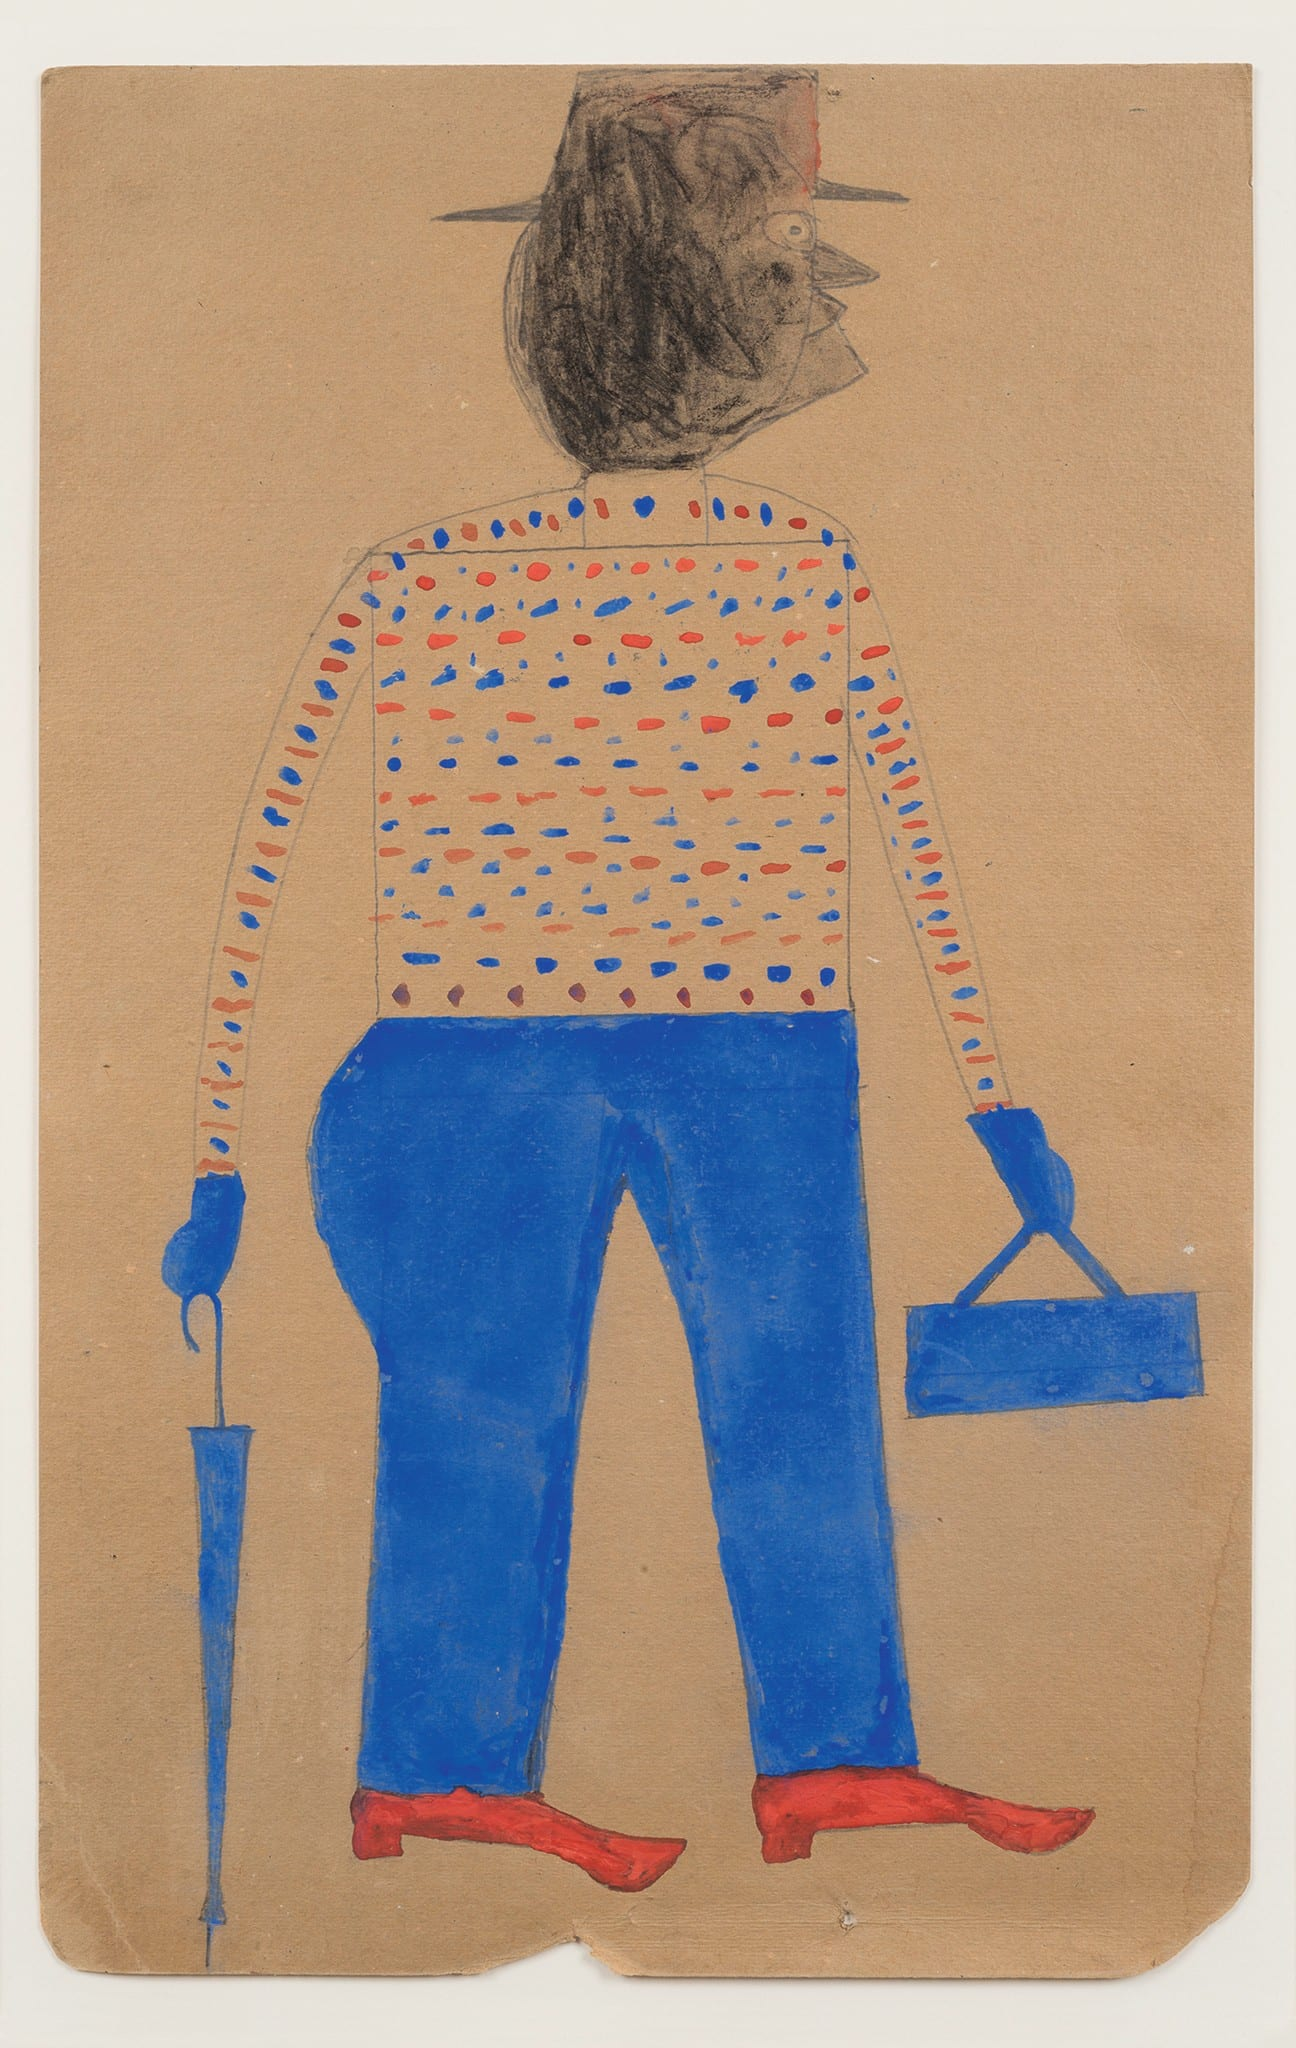 Man with Red Shoes and Umbrella by Bill Traylor